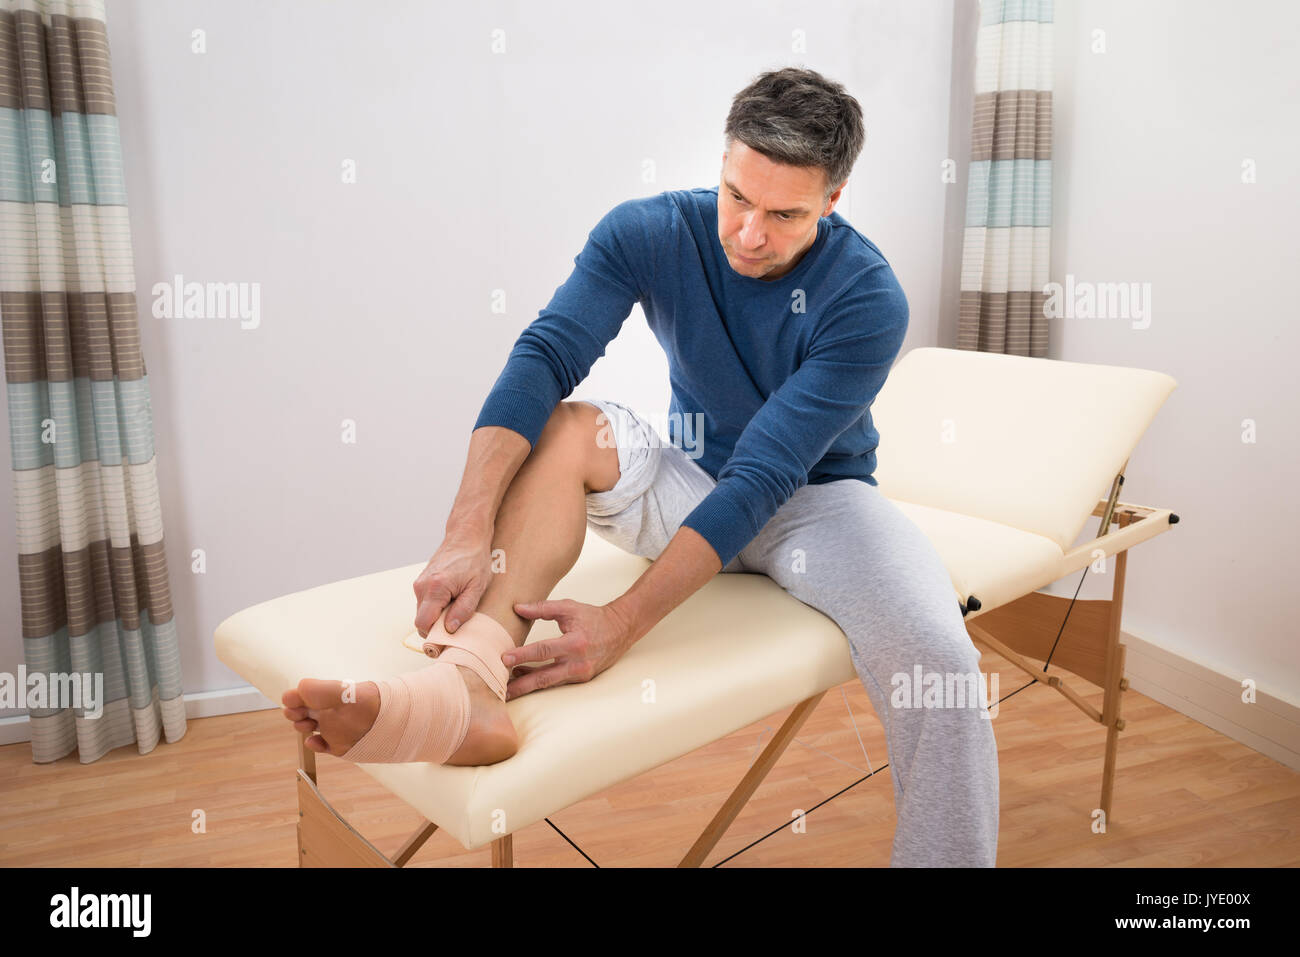 Man Sitting on Bed tapant Bandage élastique à son pied Photo Stock